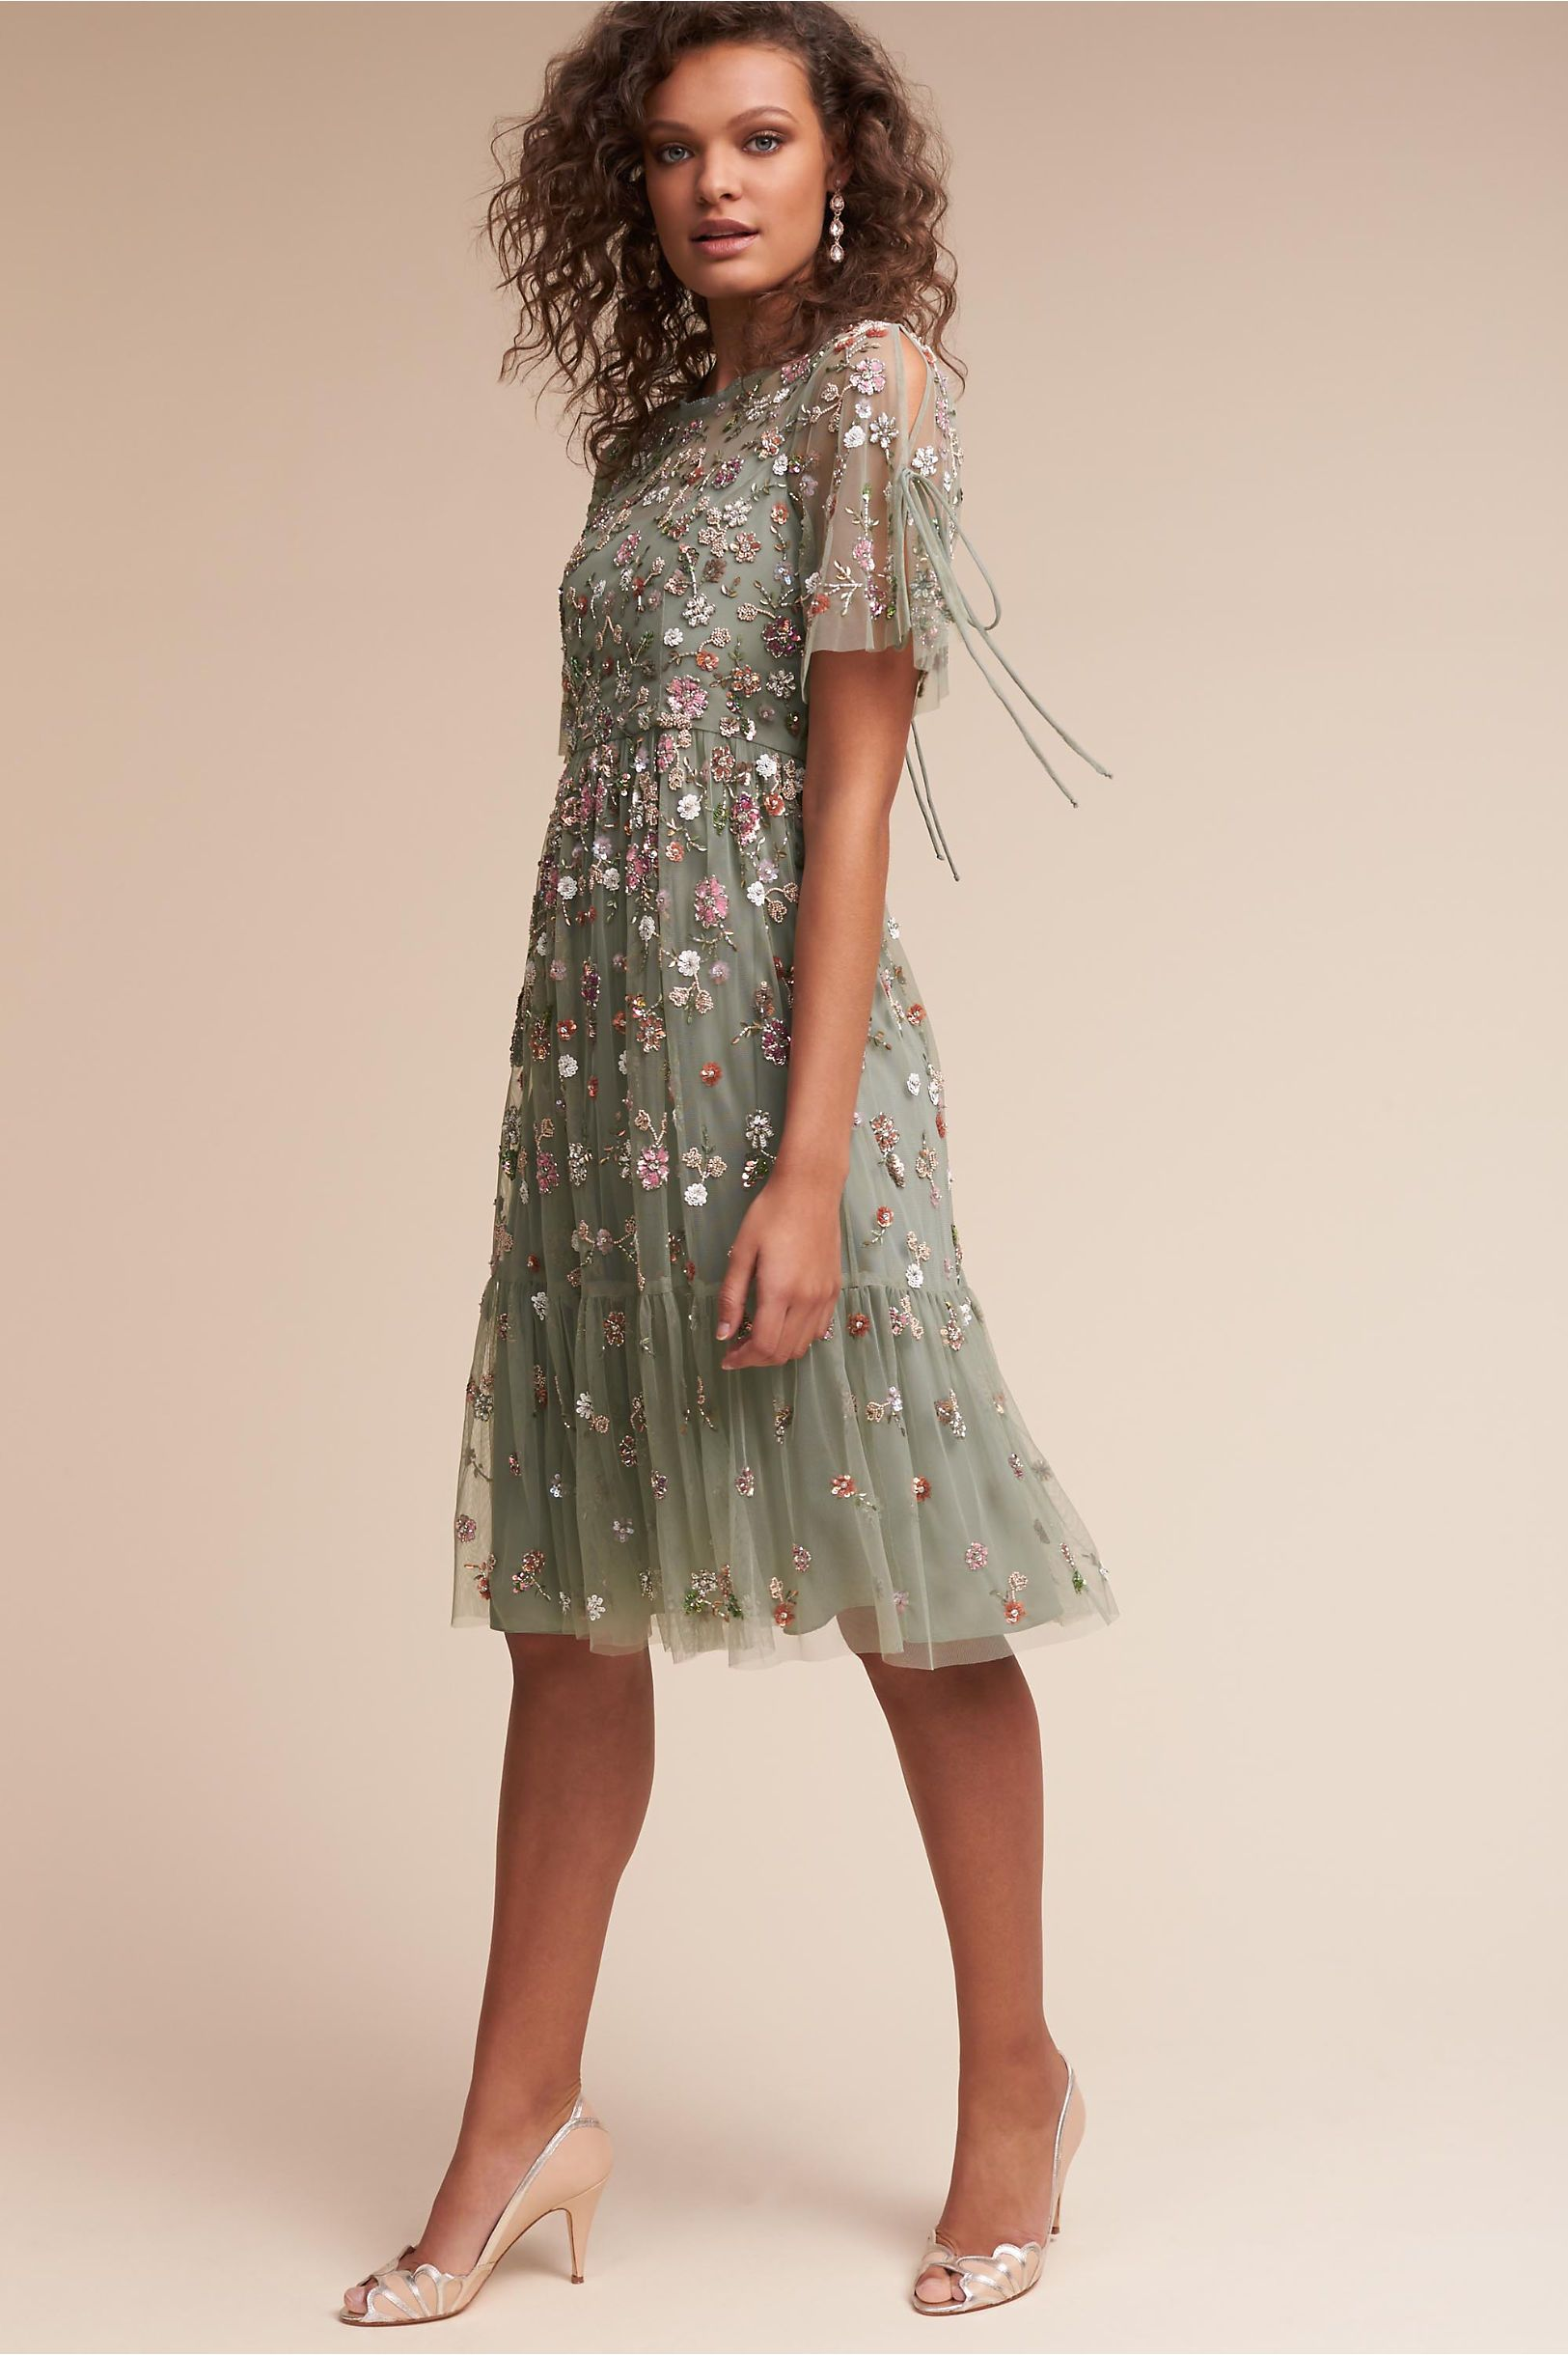 BHLDN Bobbi Dress in Party Dresses View All Dresses | BHLDN ...